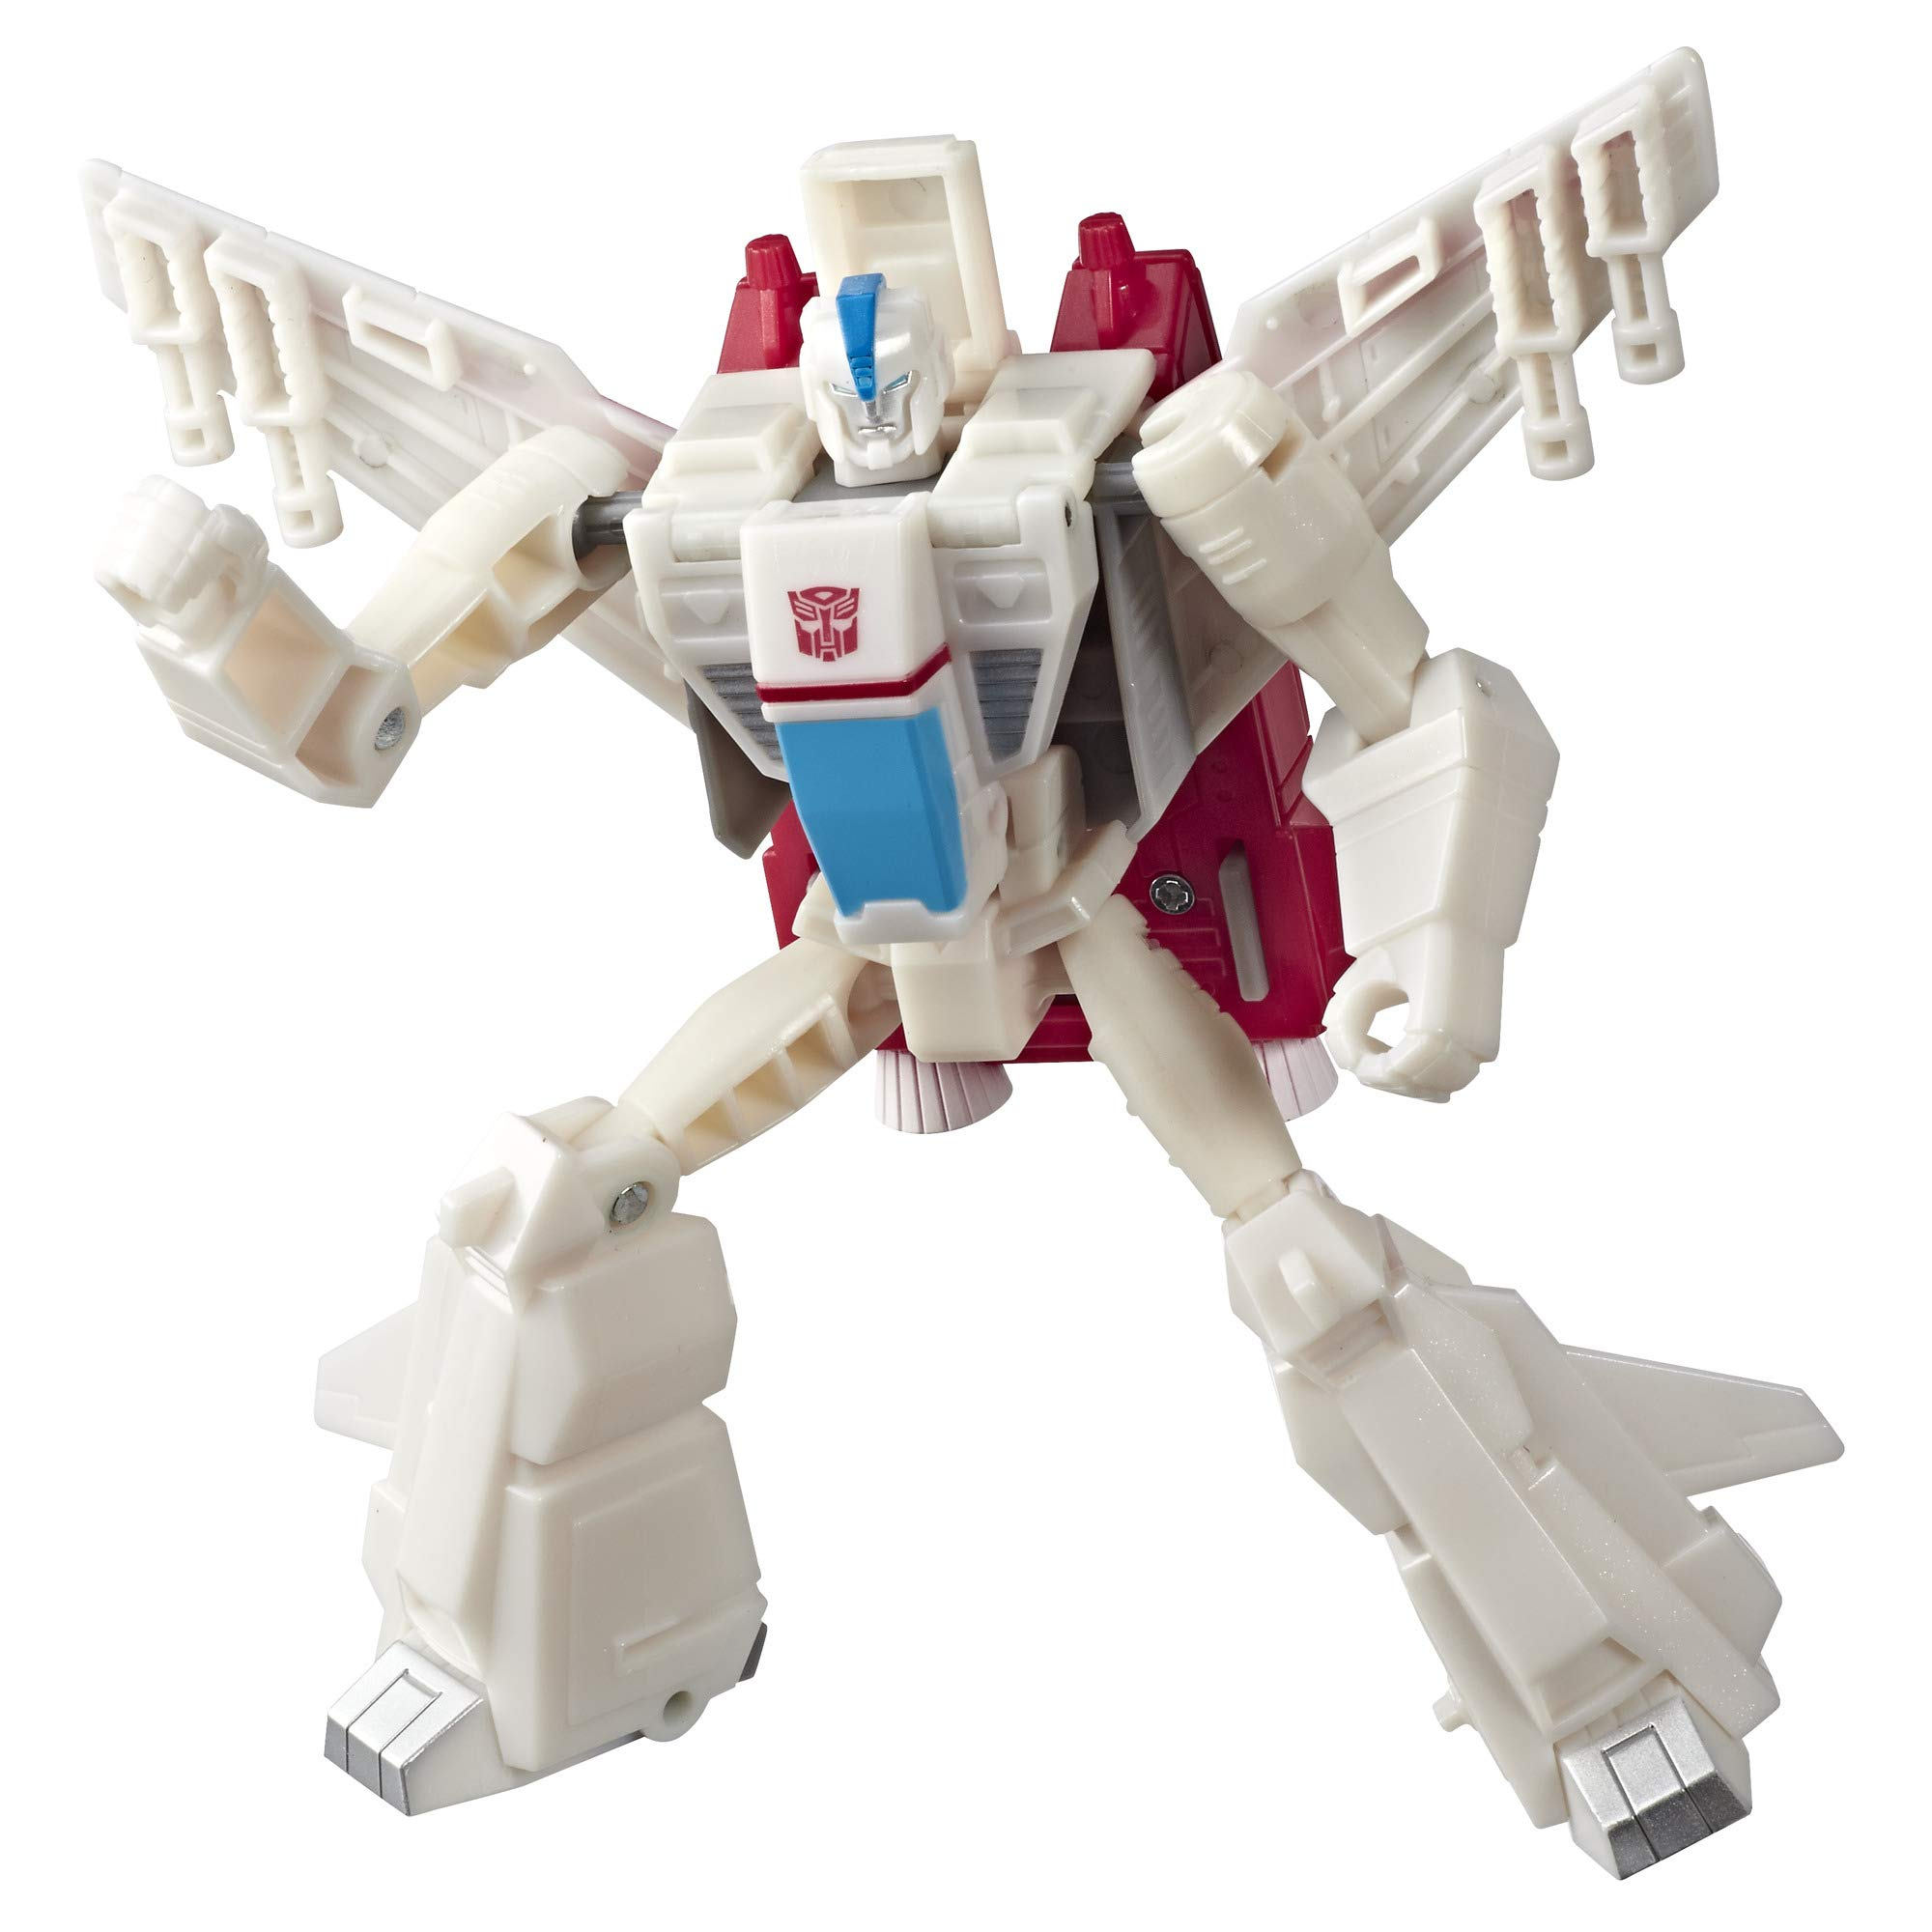 Transformers Toys Cyberverse Action Attackers Warrior Class Jetfire Action Figure